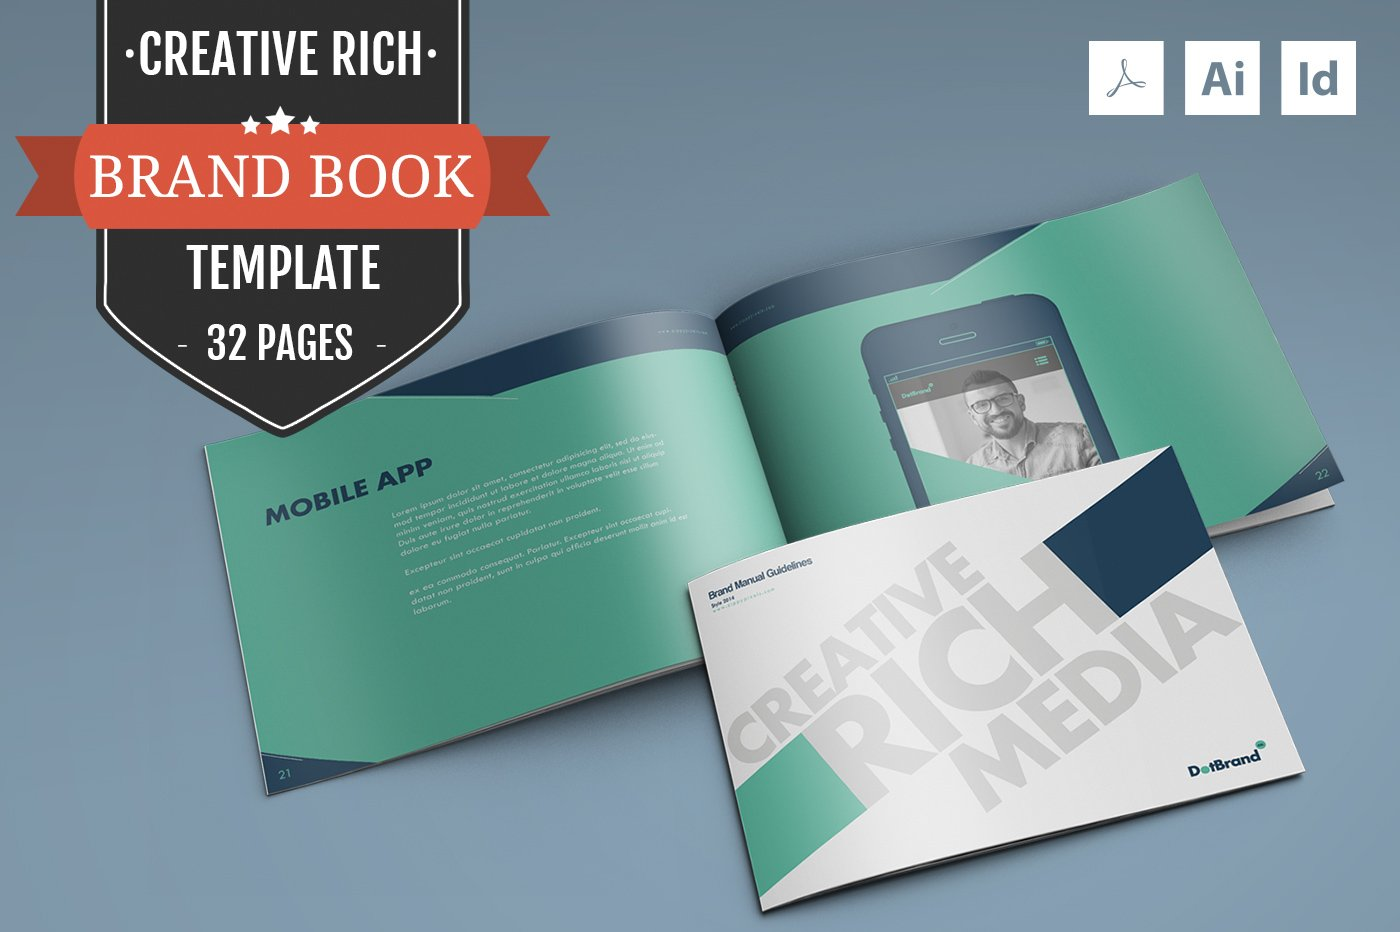 Free Creative Book Cover Template : Creative rich brand book template brochure templates